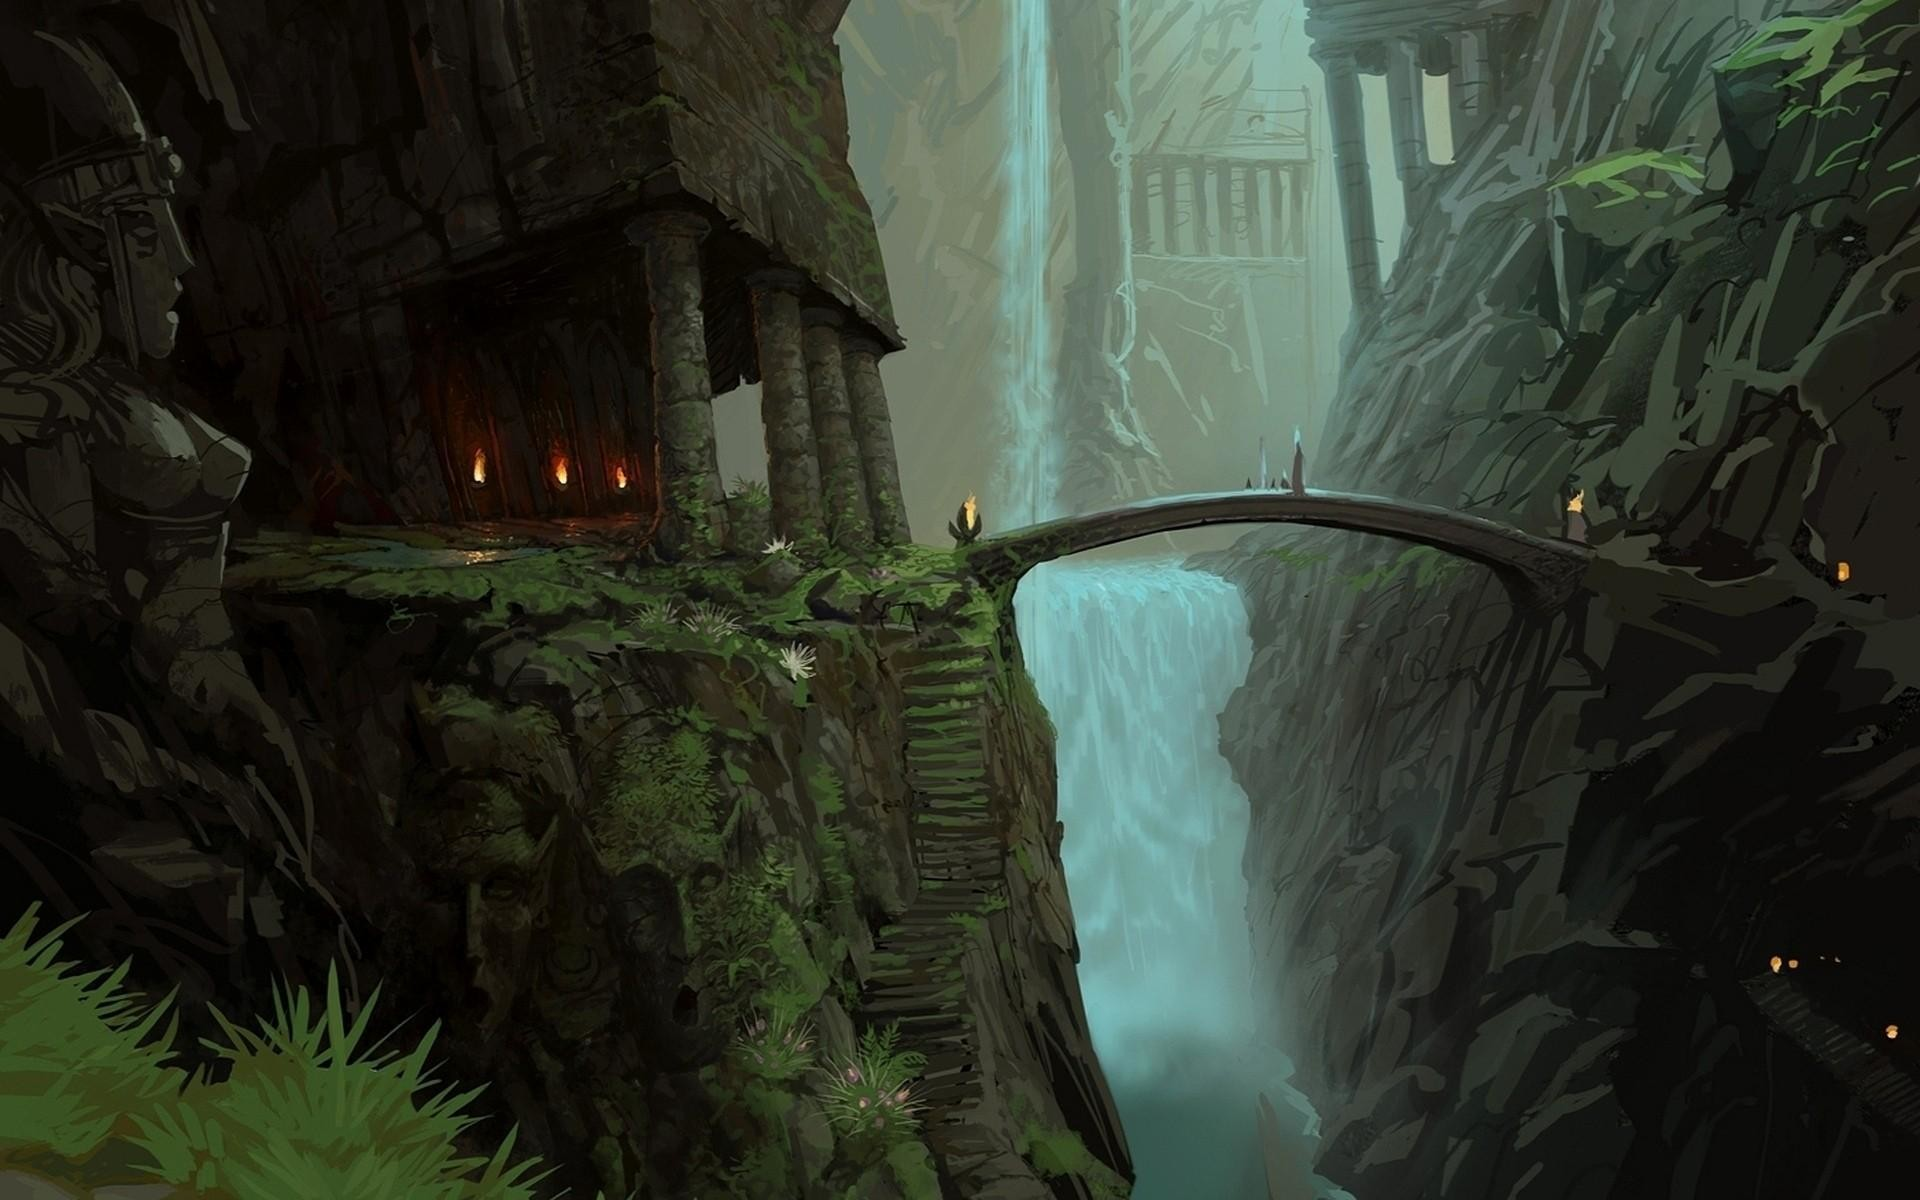 The-Lord-of-the-Rings-bridges-fantasy-art-